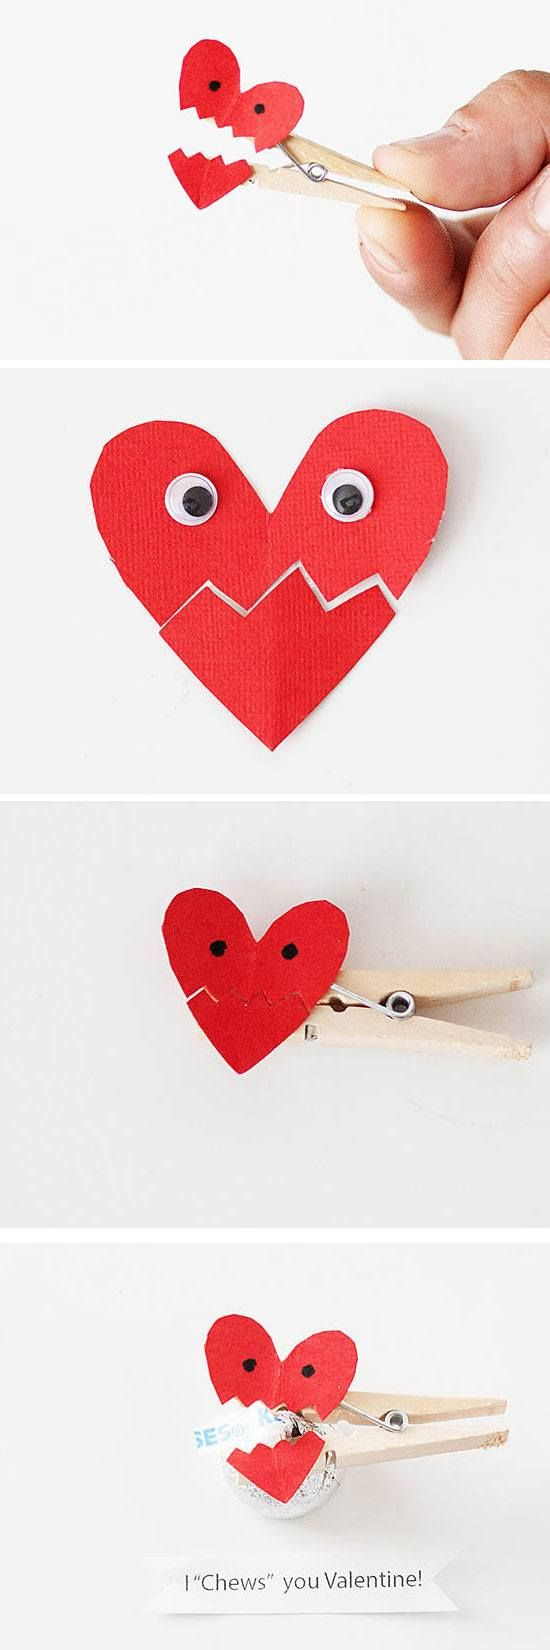 25714ba694d86b91d7d855cb153fcc98 valentine crafts for kids valentines day activities - I Chews You Valentine | DIY Valentines Crafts for Kids to Make | Easy Valentines...